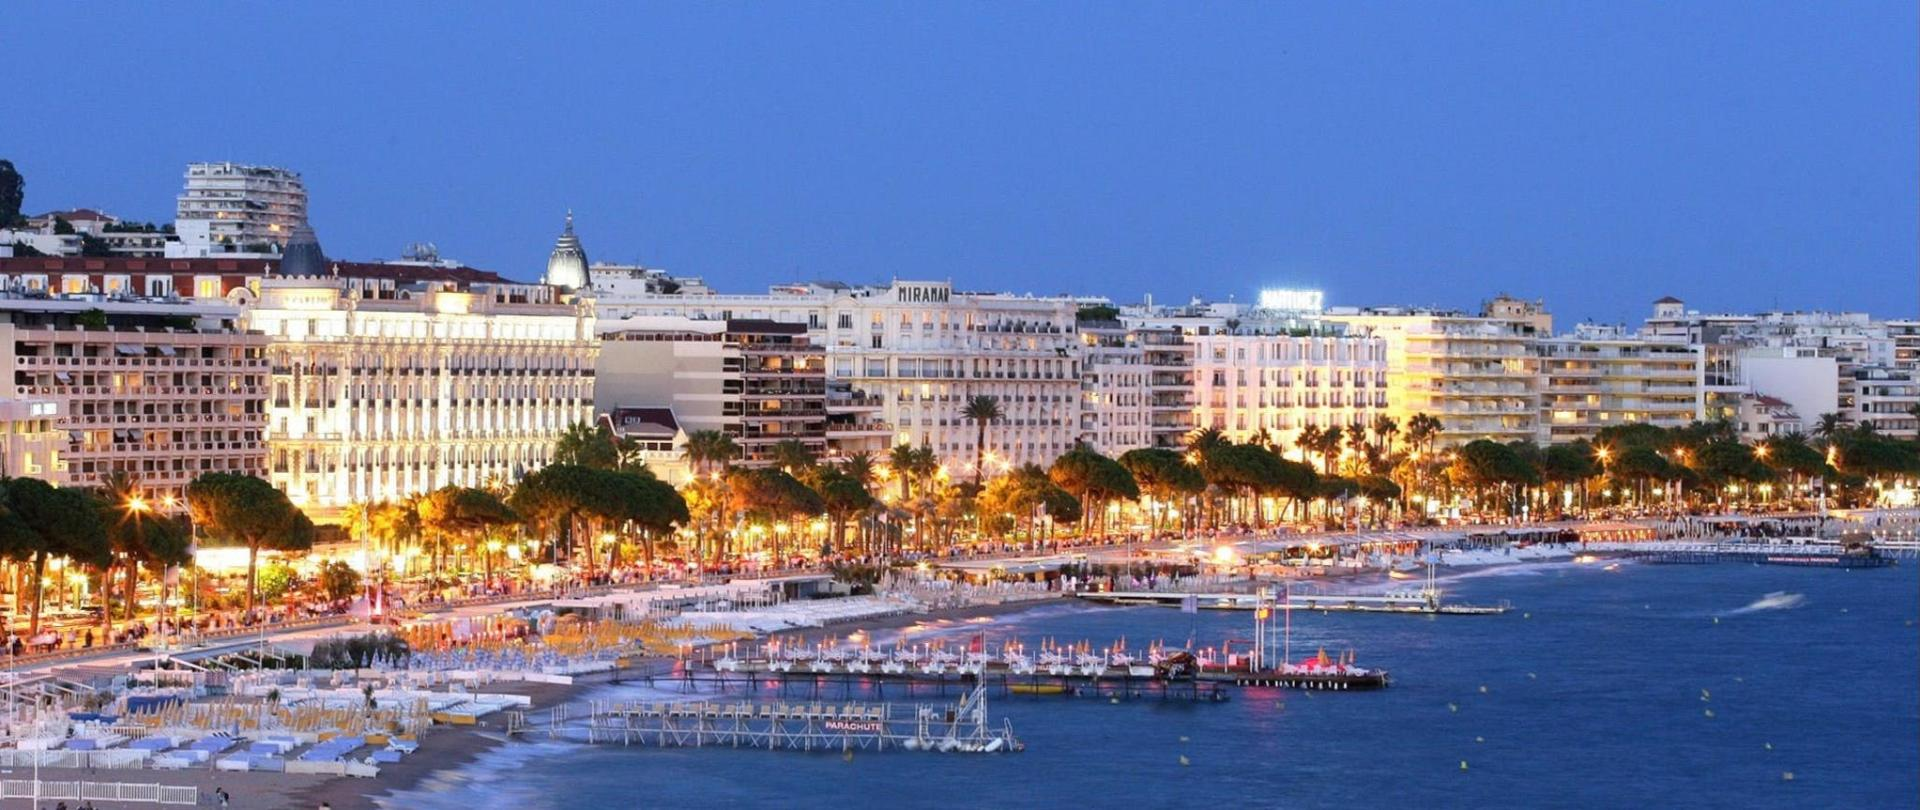 Cannes-France-Cropped2.jpg